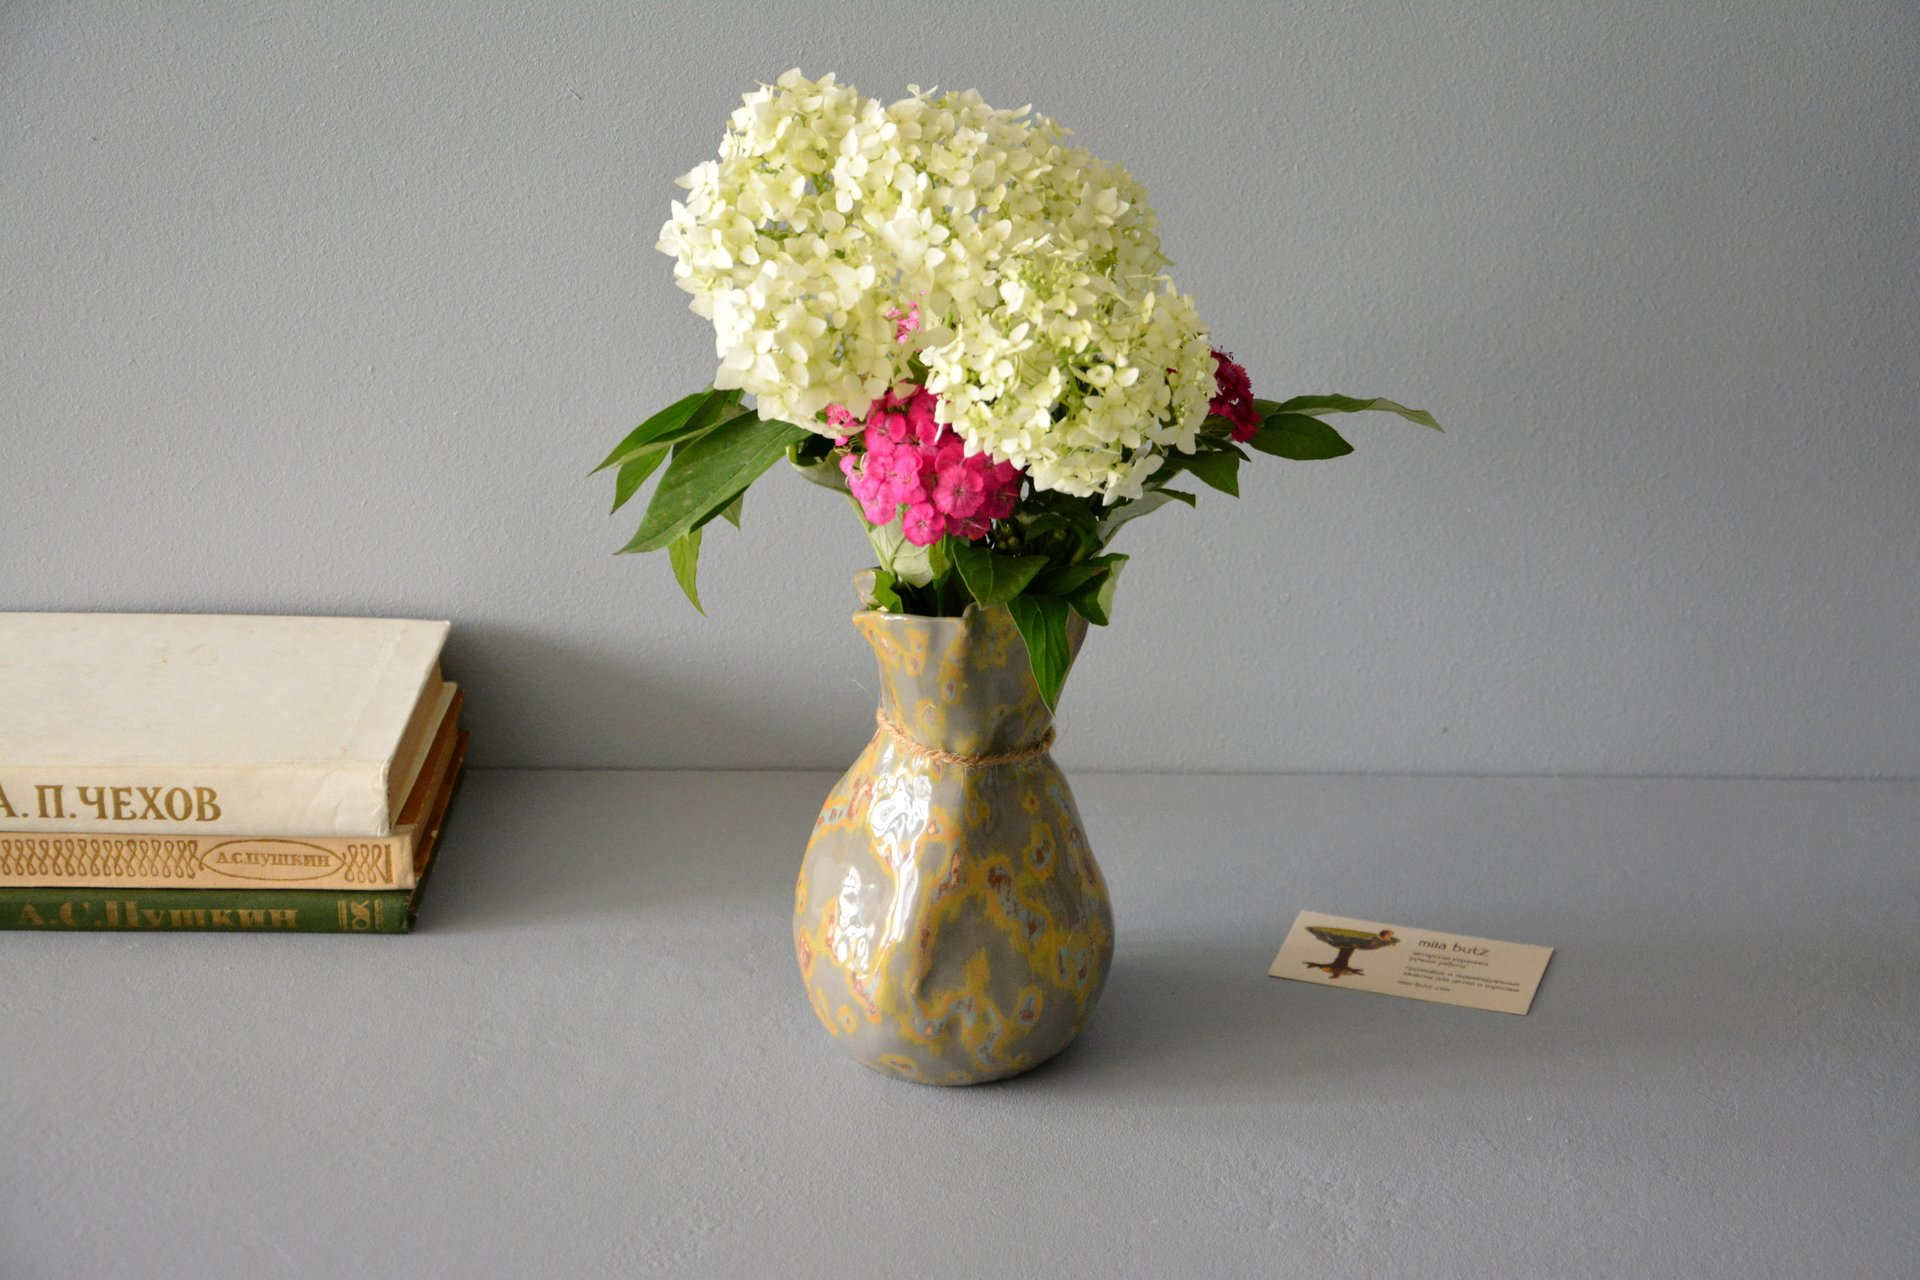 Candle vase «Shabby gray Bagful», height - 17 cm, color - gray. Photo 991.